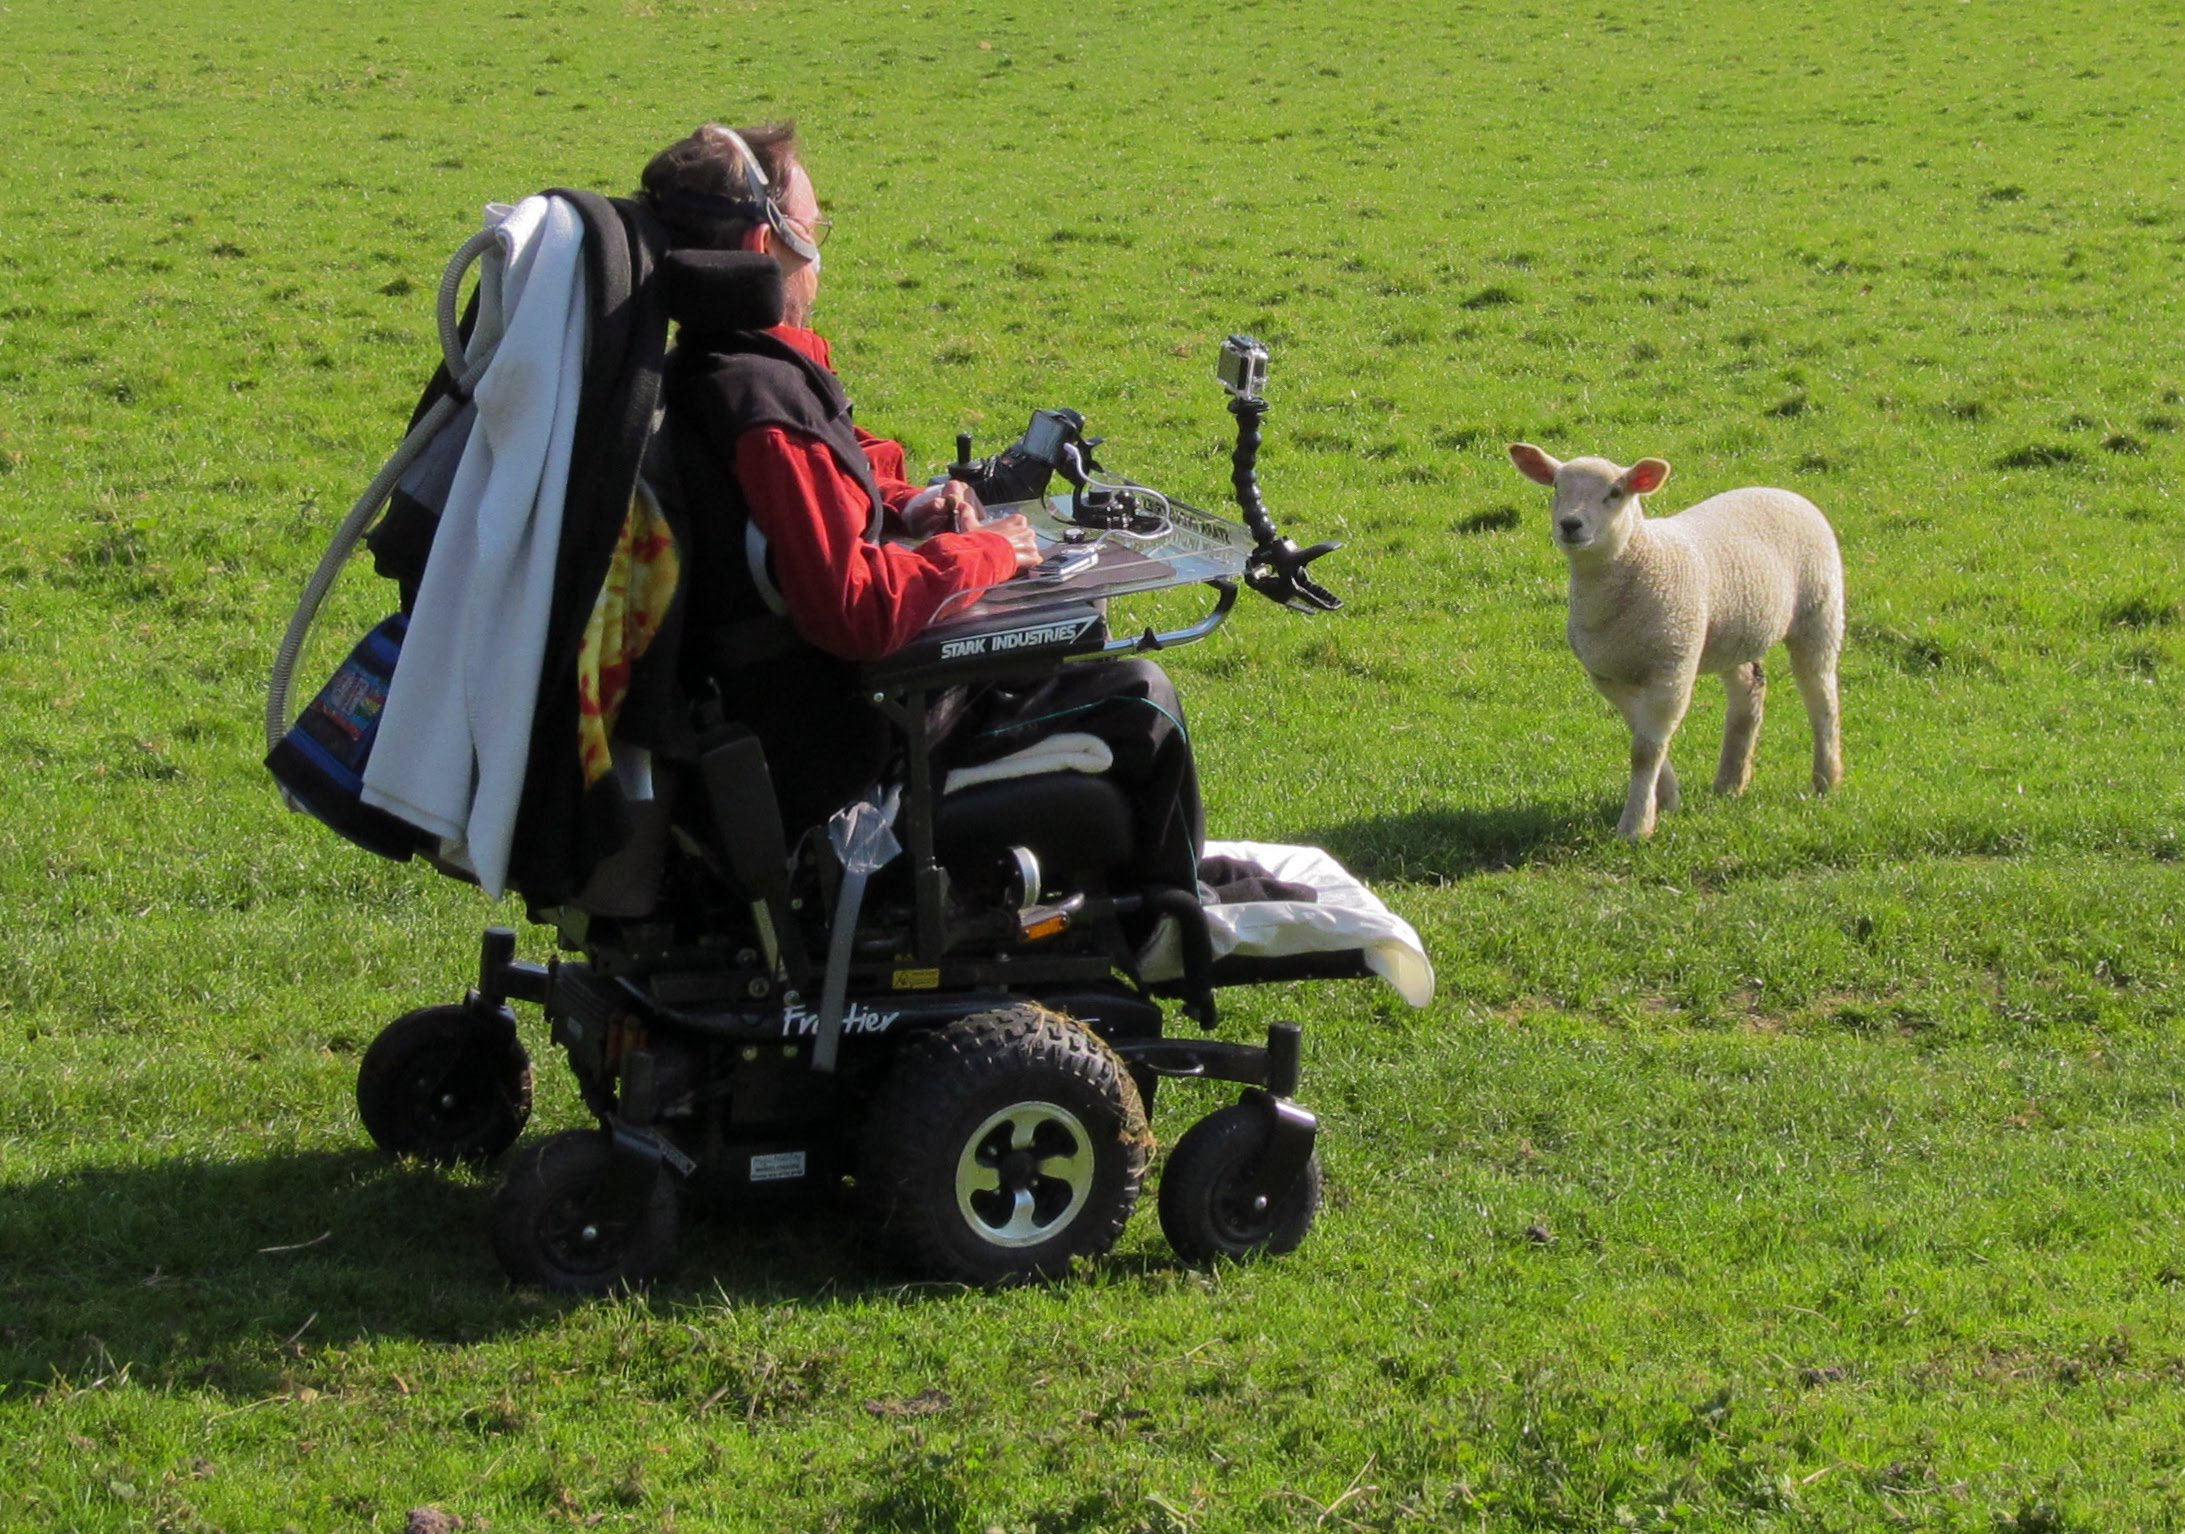 Daniel Baker in his wheelchair facing an interested lamb at a visit to April 18th 2014 visit to Sudeley Castle